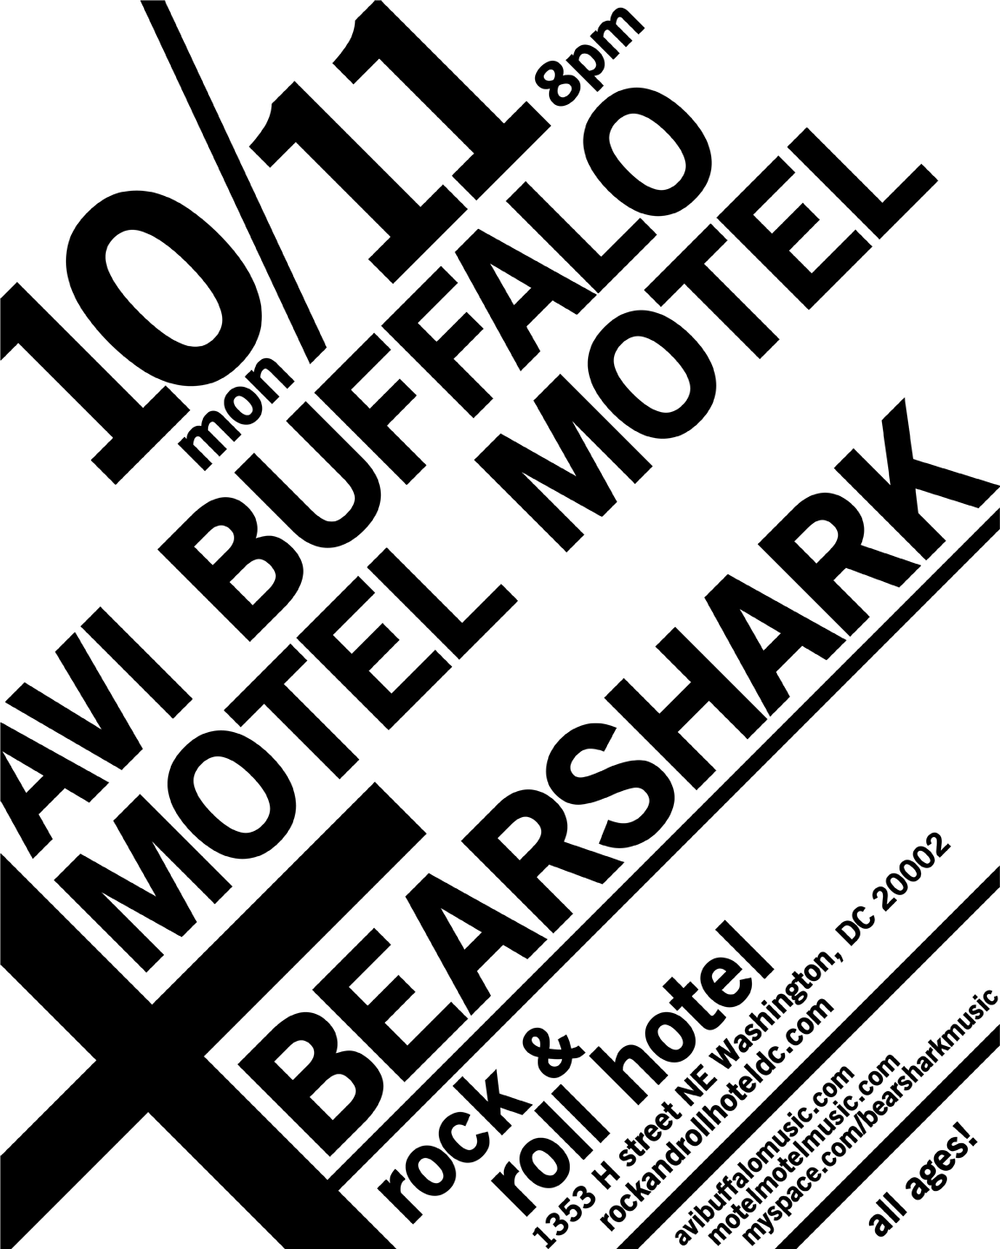 2010_bearshark1011_final.png